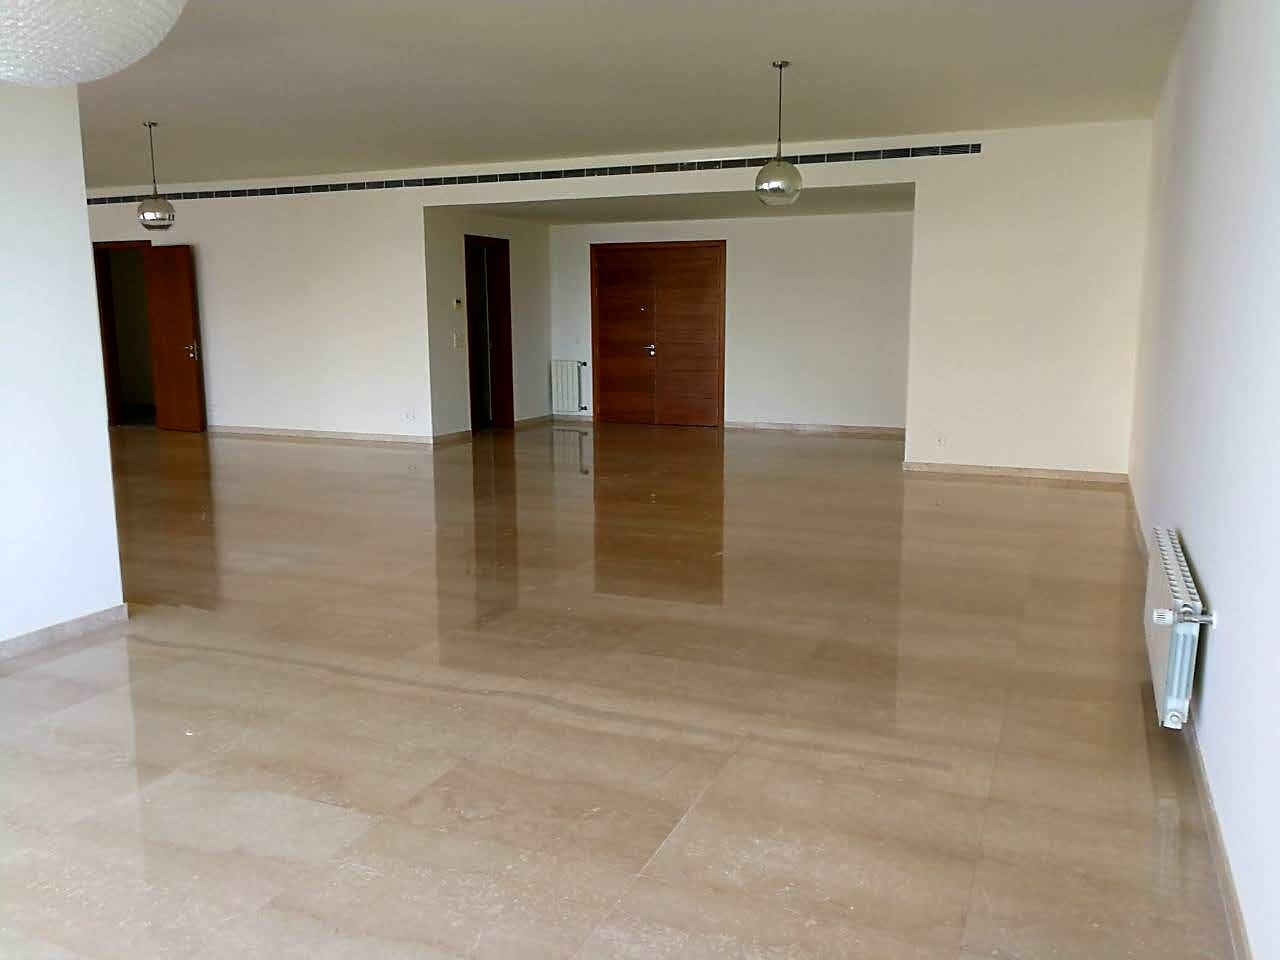 Apartment for Rent, Ashrafieh, 546 sqm,  80,000 USD